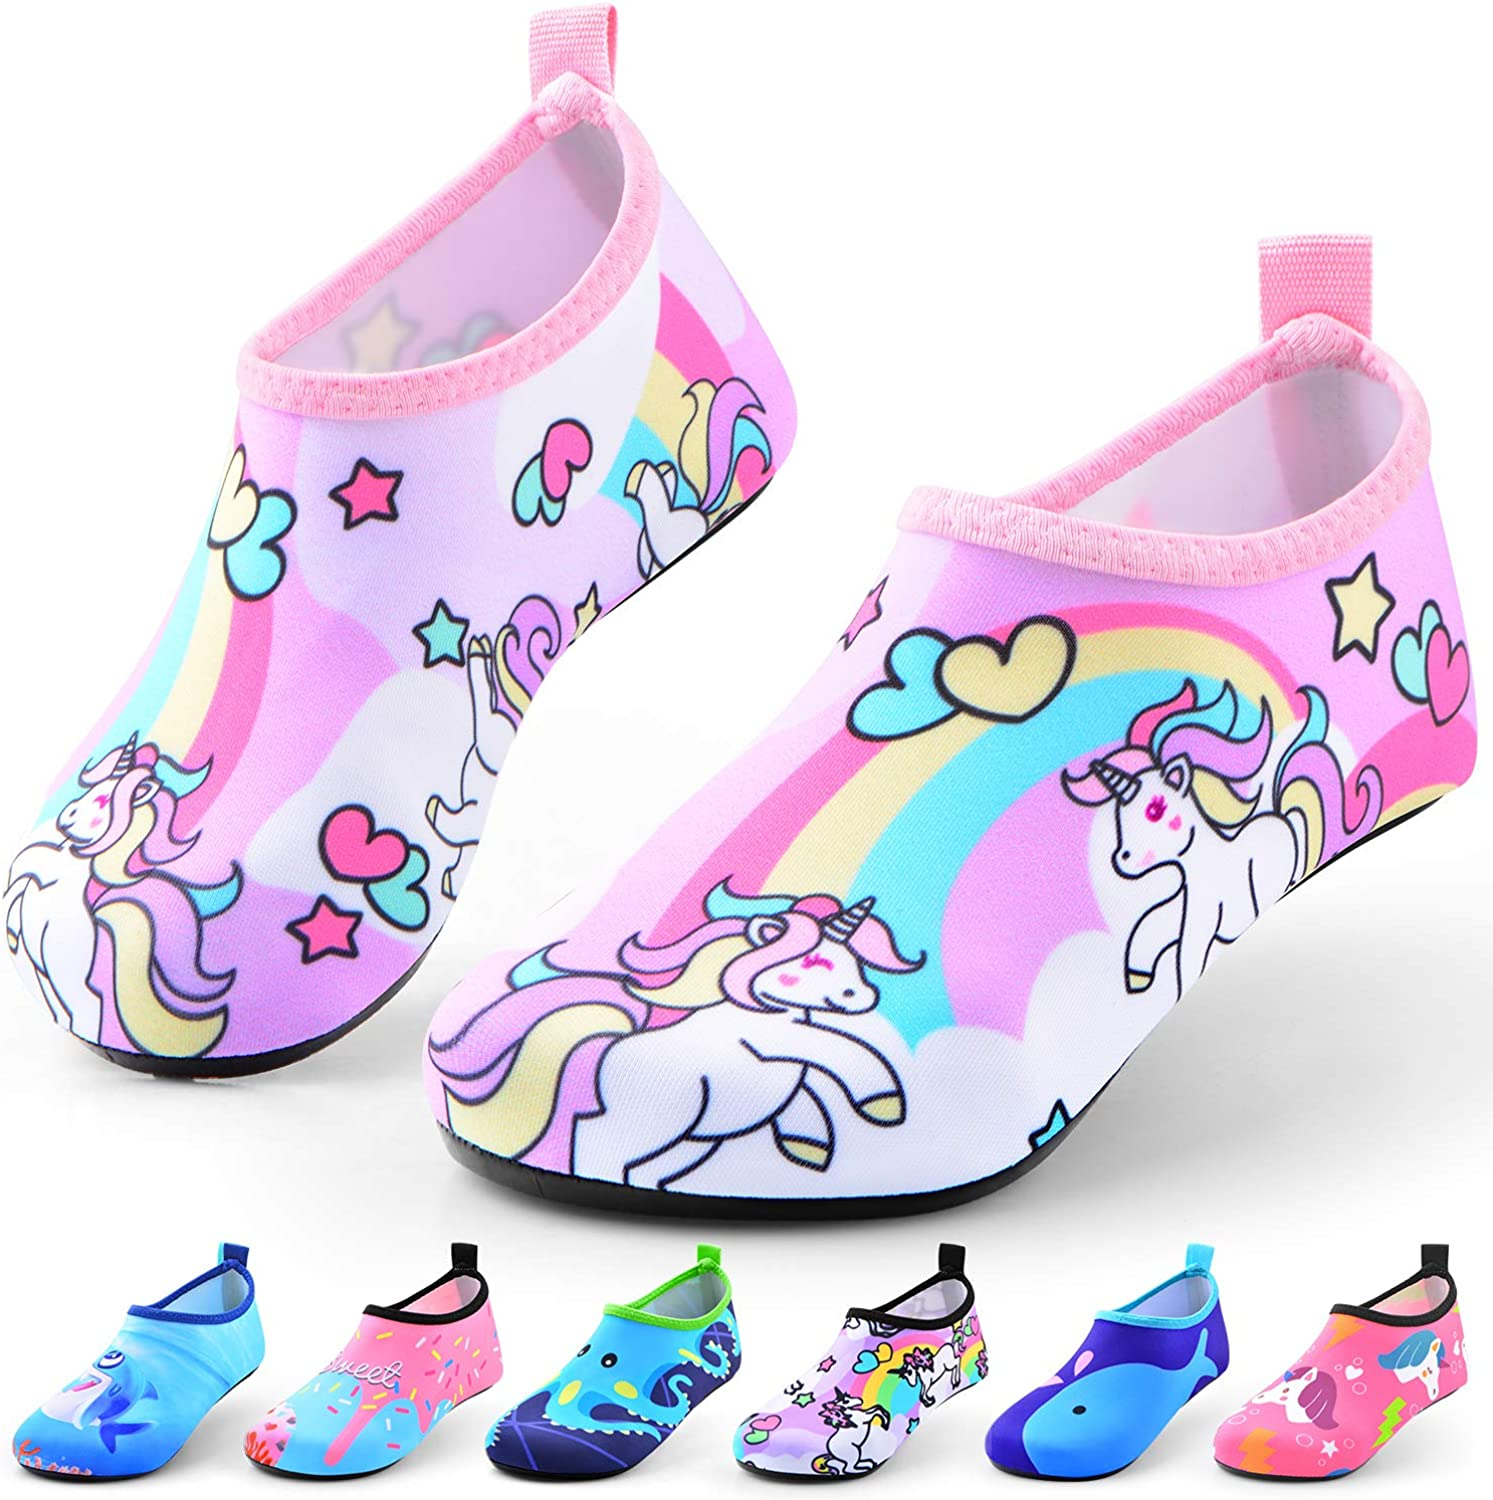 Sunnywoo Water Shoes for Kids San Francisco Mall Boys,Toddler Girls Swim famous